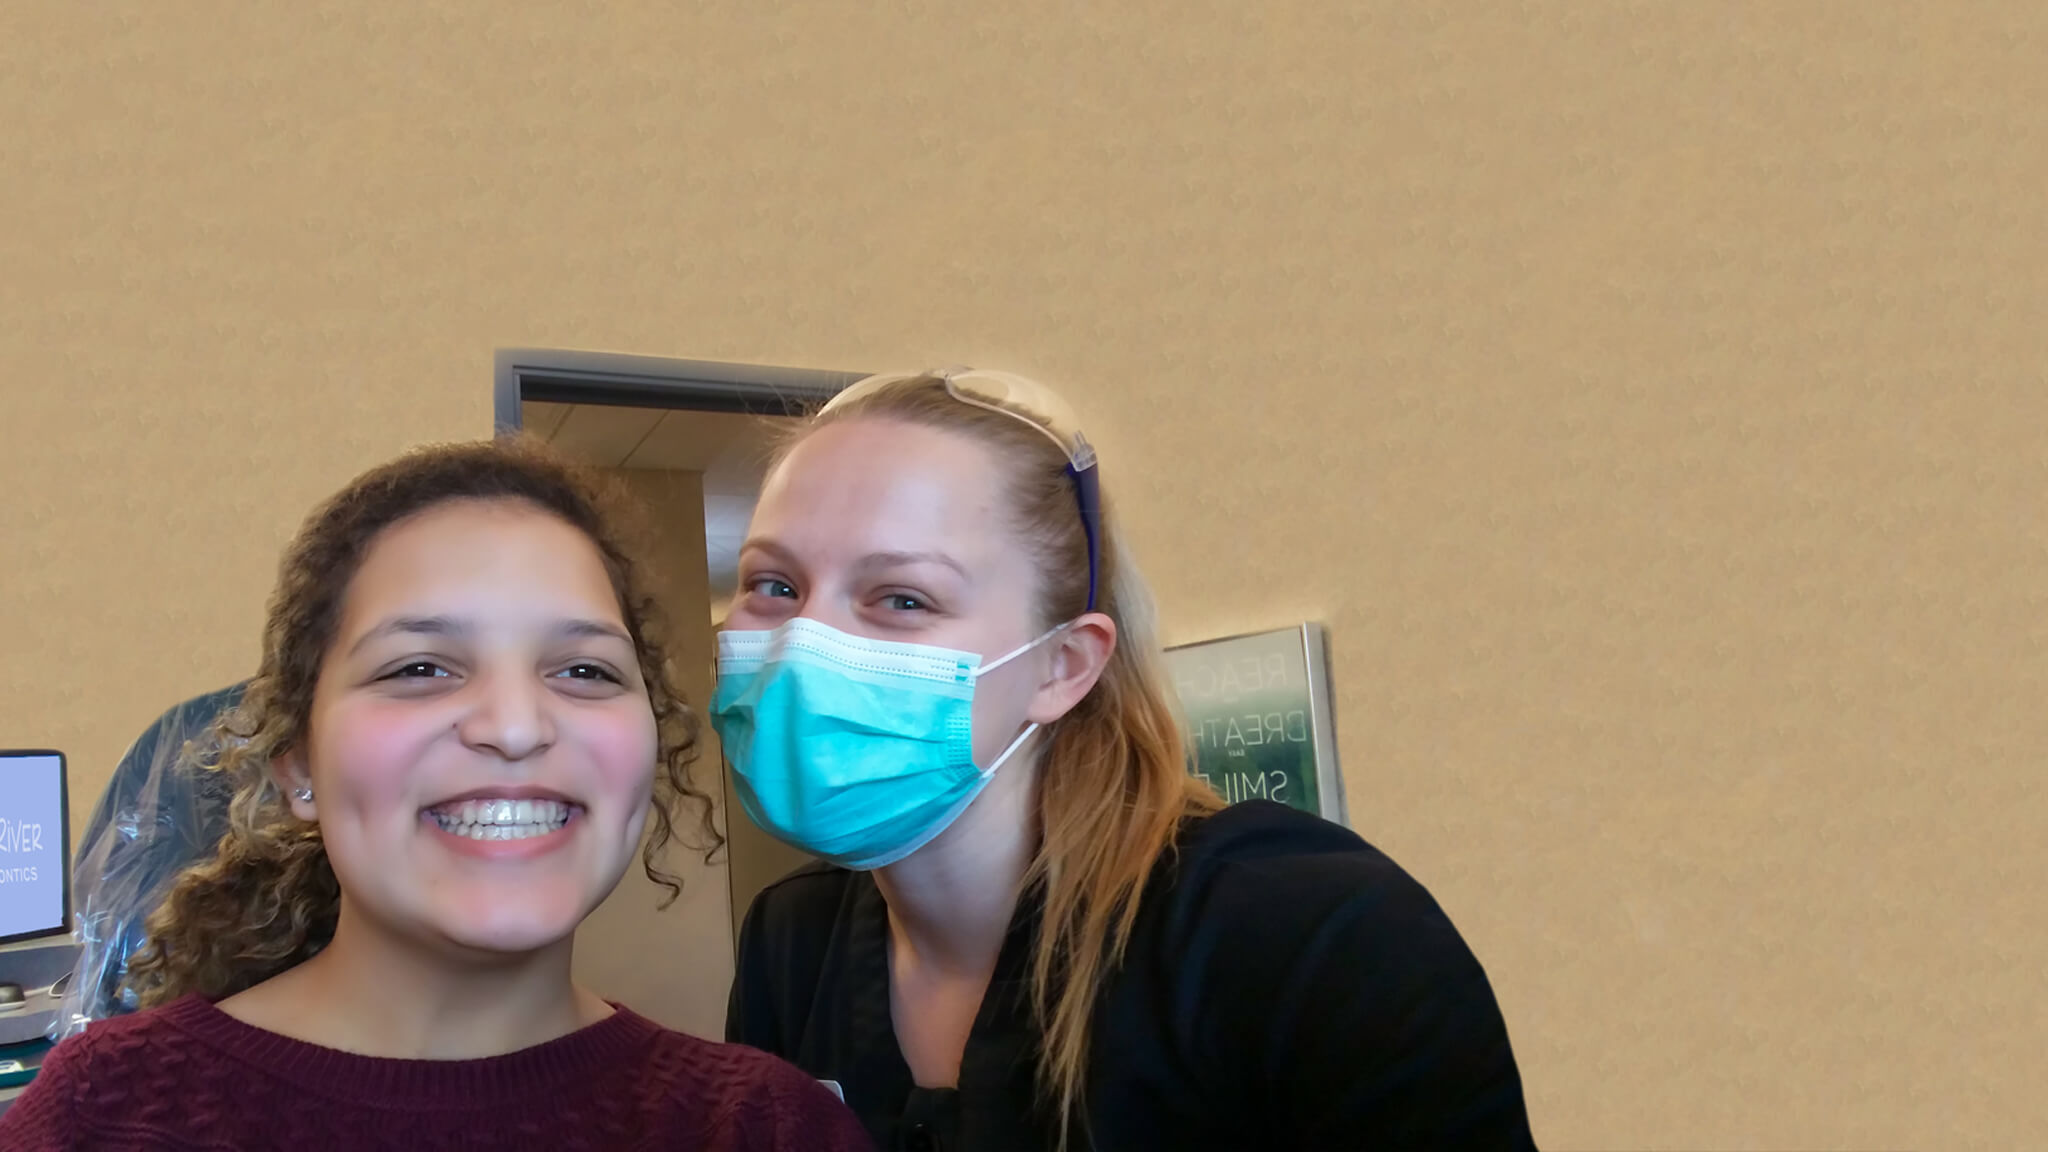 A doctor pictured next to her smiling patient with straight teeth